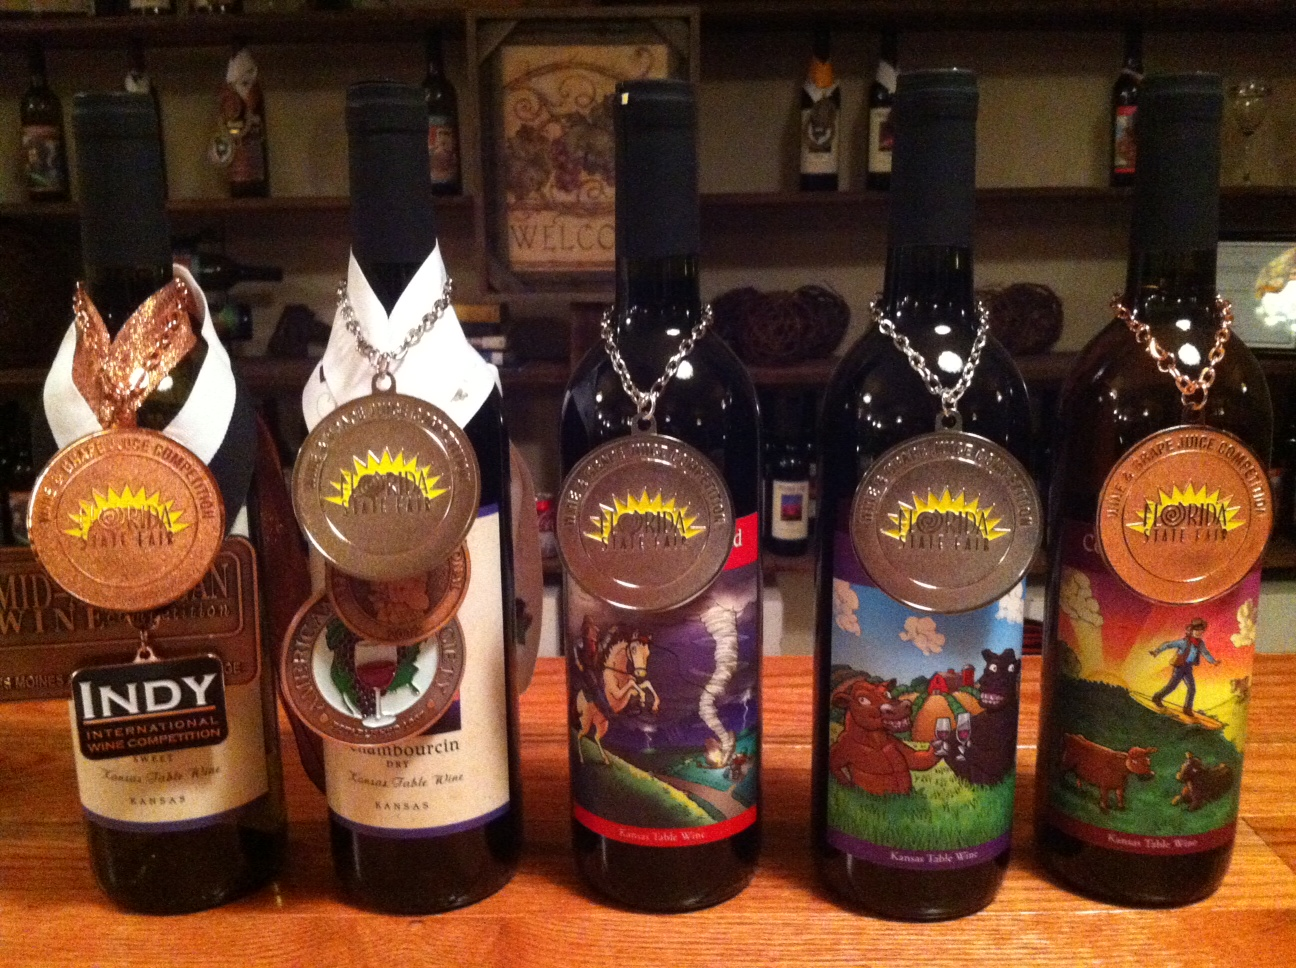 Prairie Fire Winery Florida medals